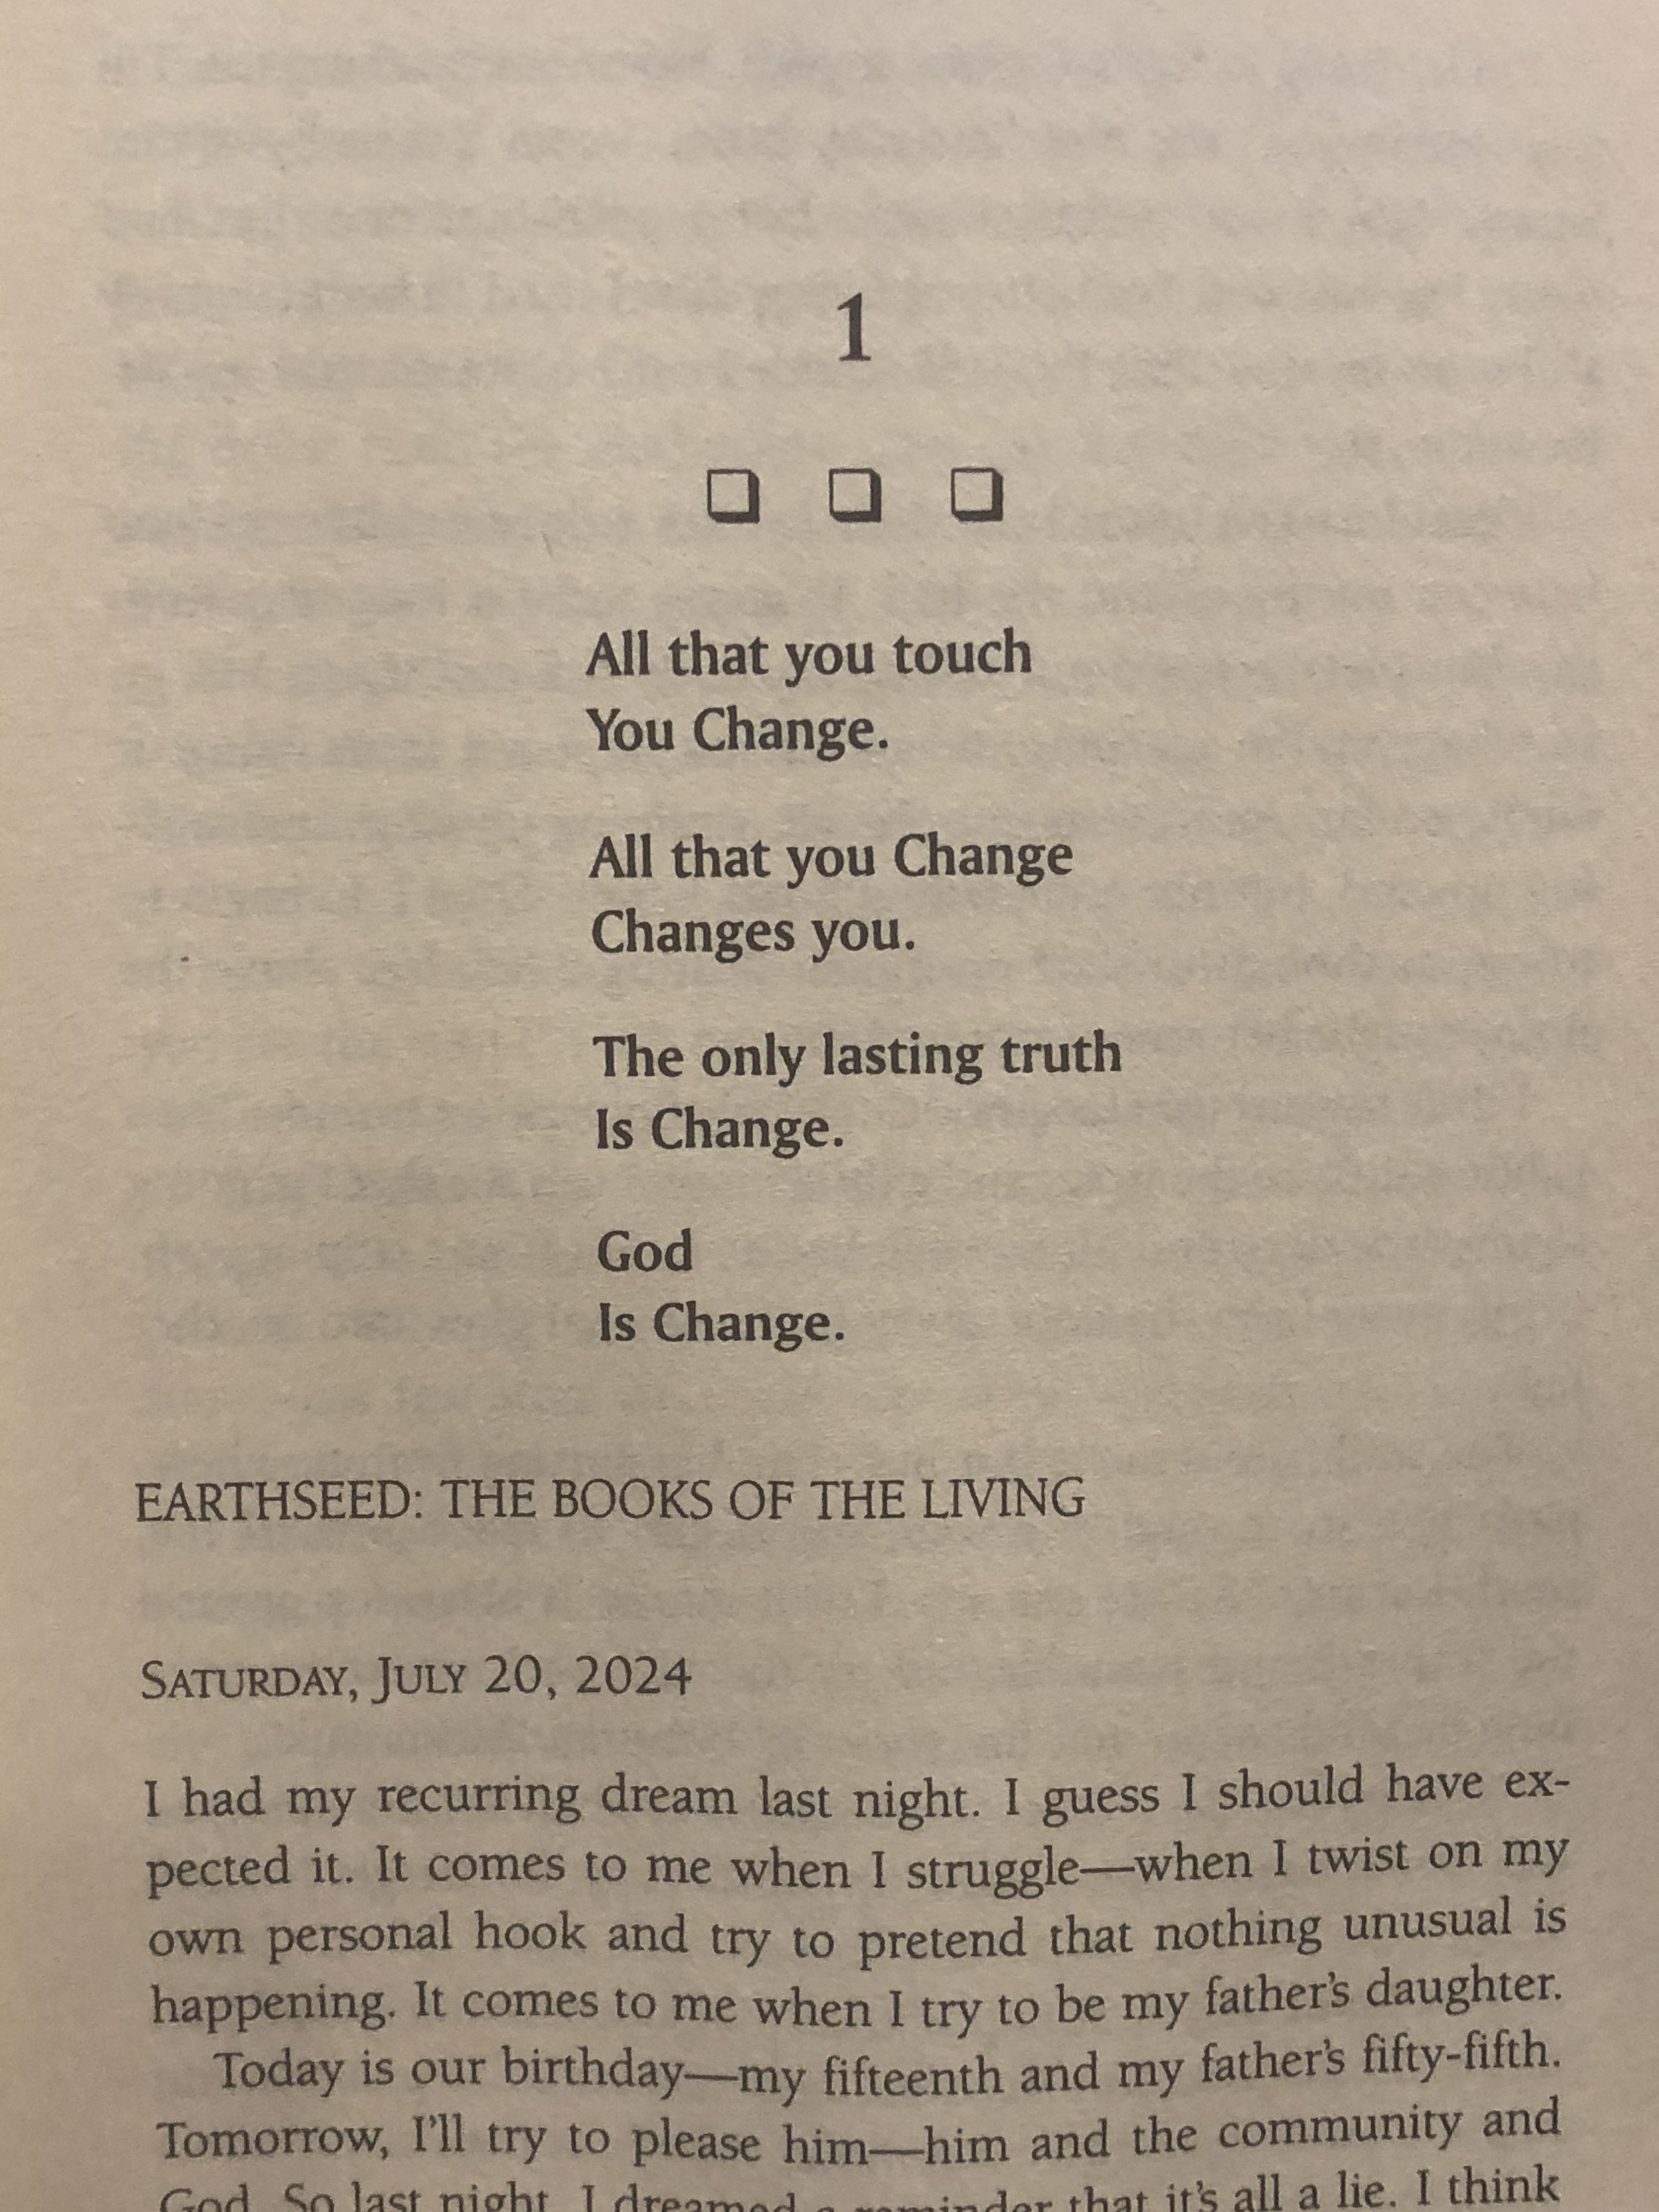 Parable of the Sower - by Octavia E. Butler